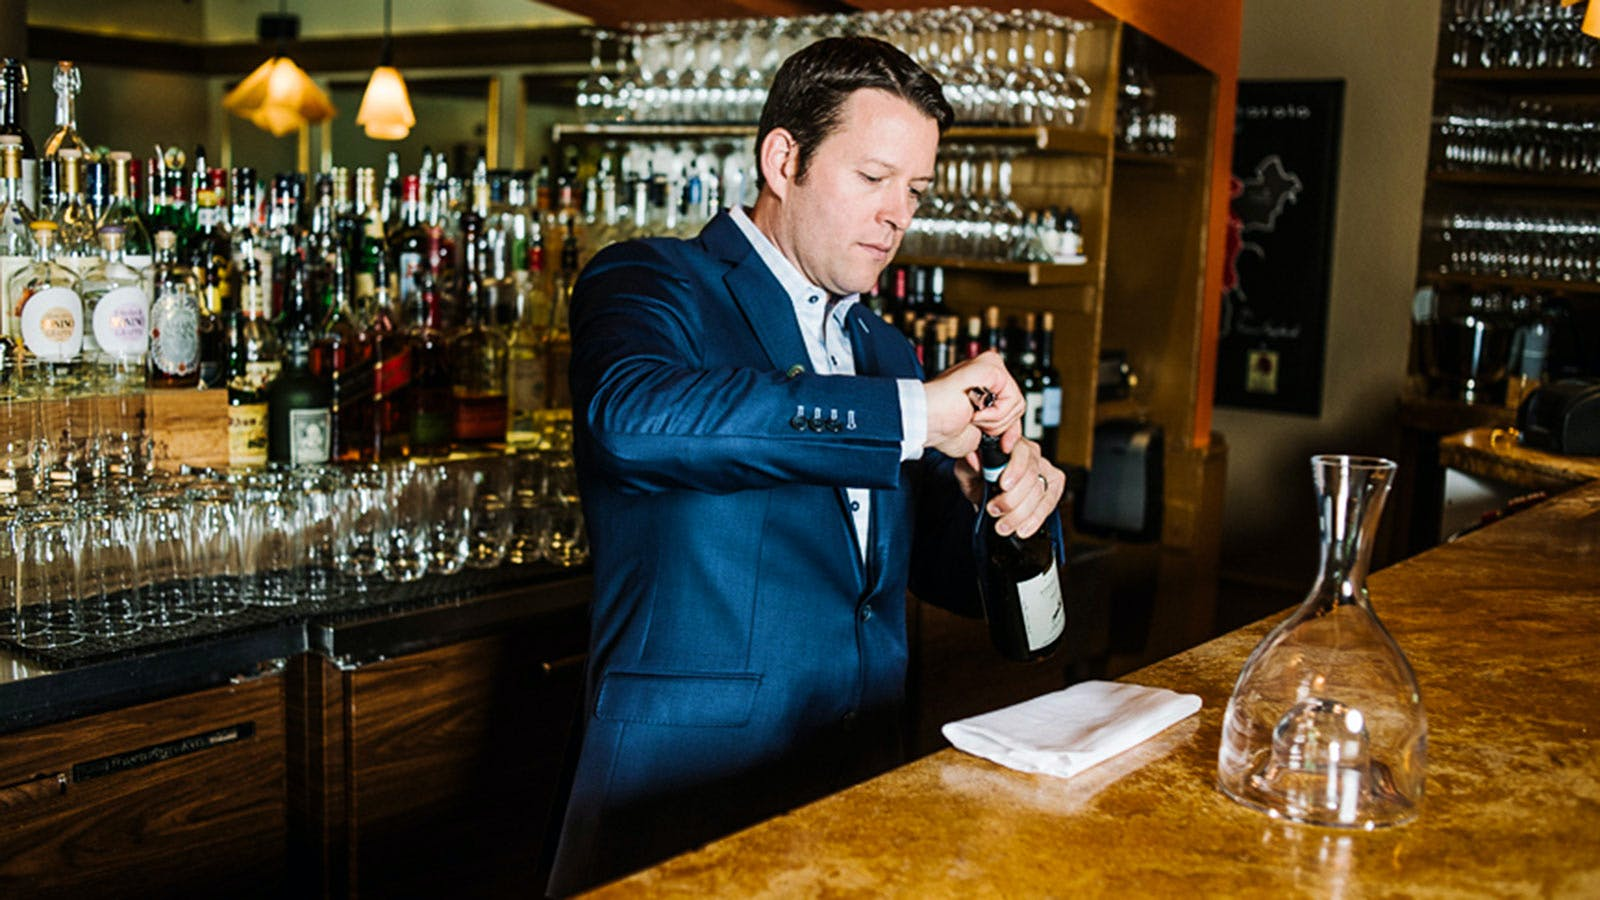 Diners Loved Wine to Go During the Pandemic; Some States Will Keep It While Others Pull the Plug